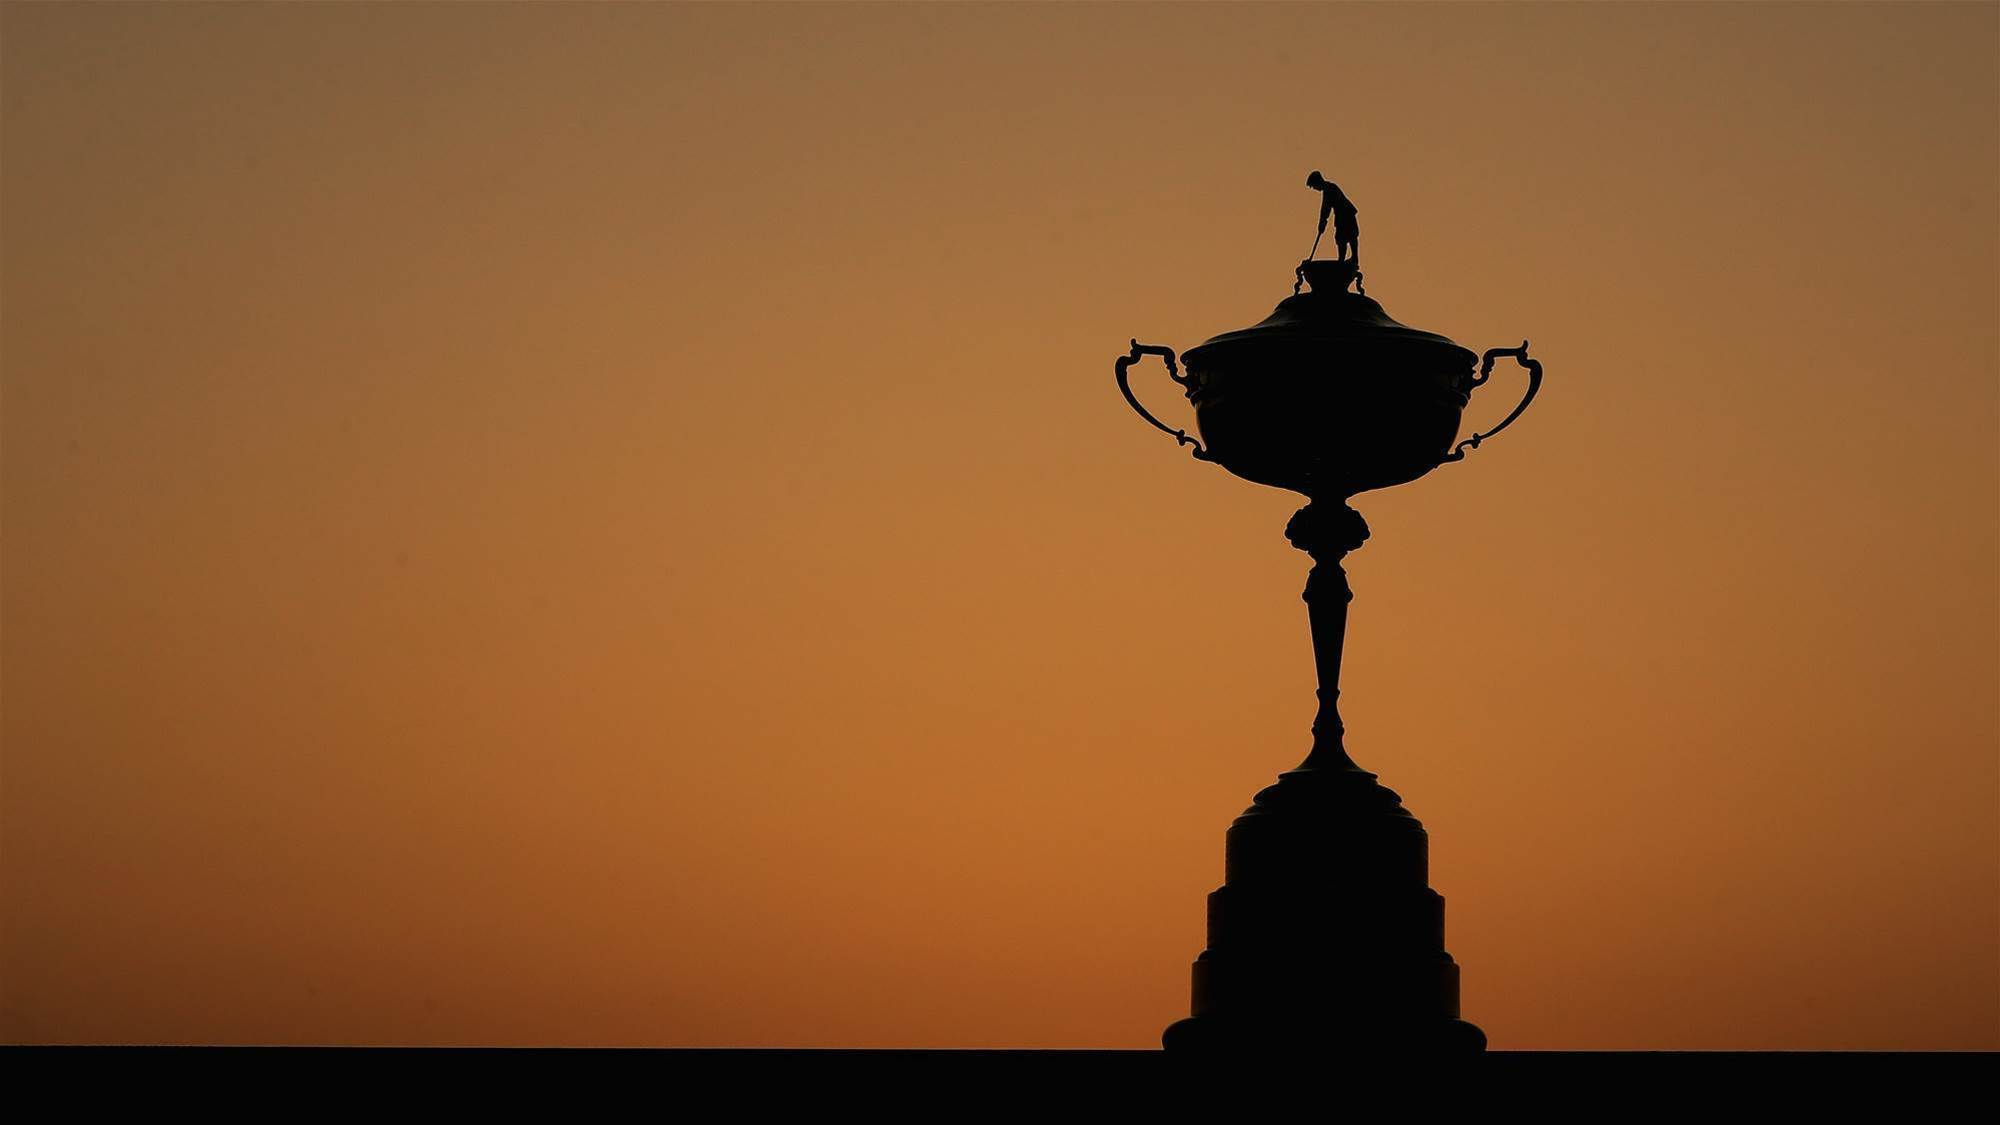 RYDER CUP: Beware the Sleeping Giant